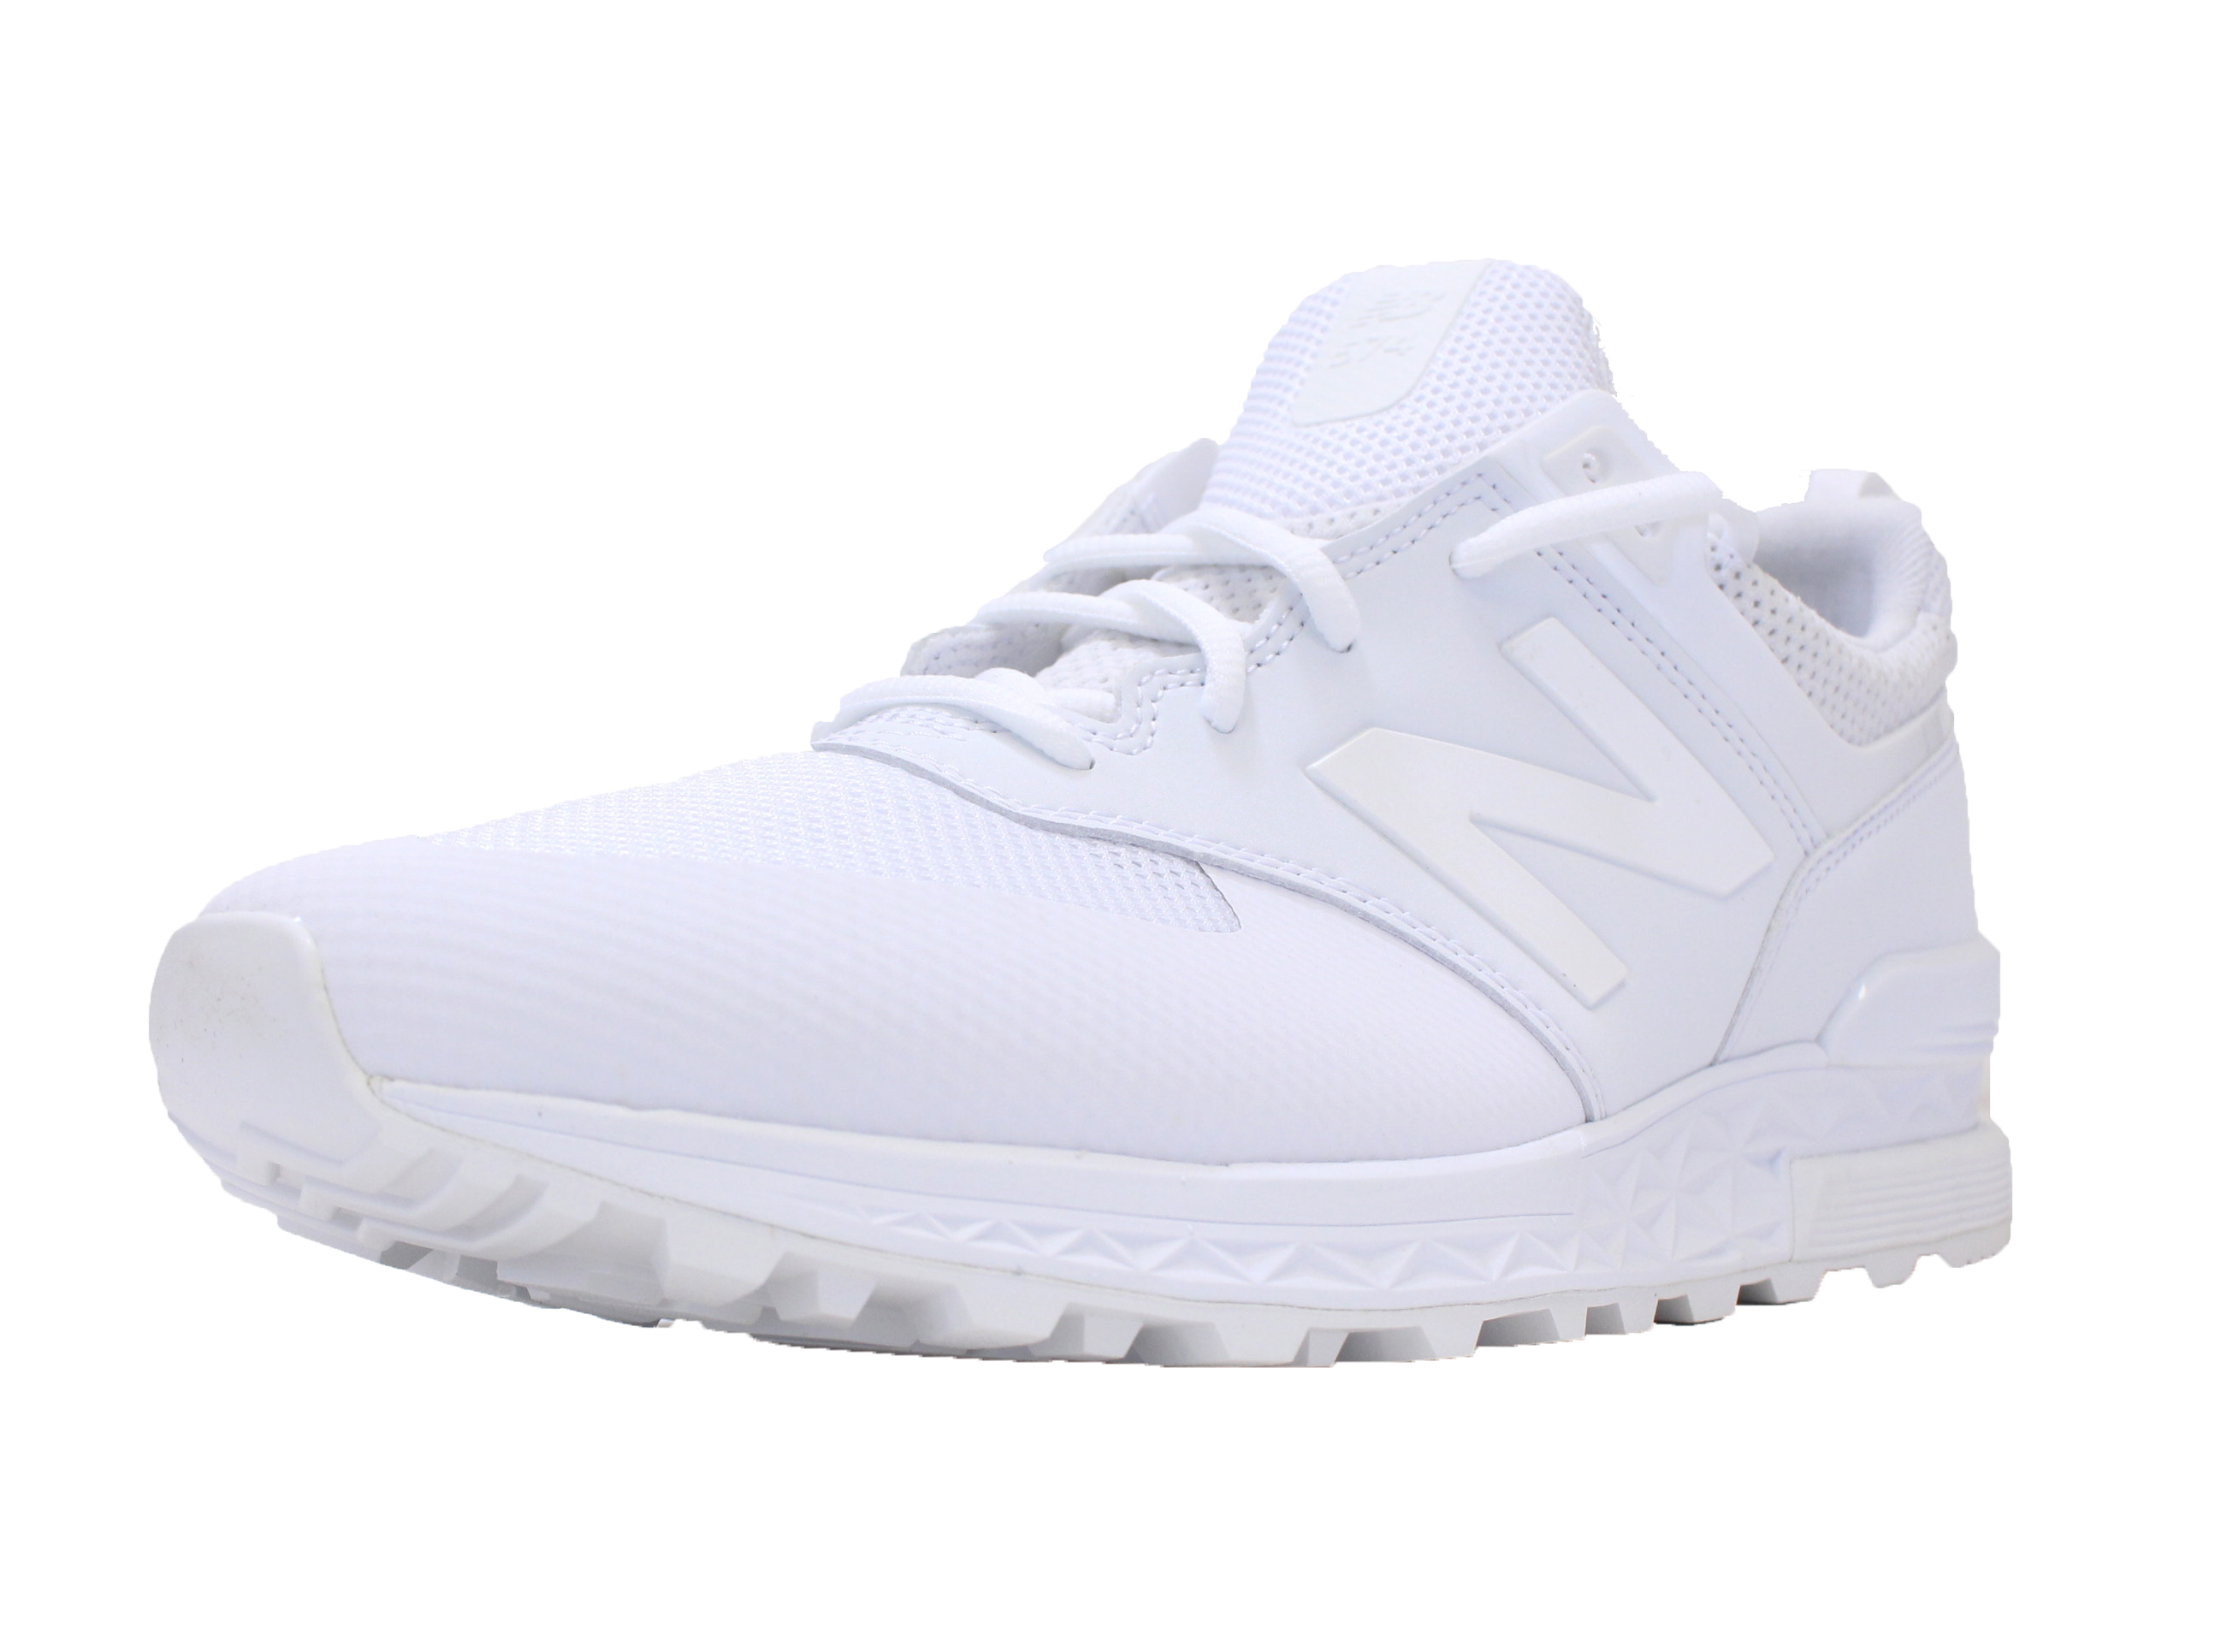 san francisco 09d76 e04e1 NEW BALANCE 574 SPORT SZ 8 TRIPLE WHITE MESH FRESH FOAM RUNNING SHOE  MS574SWT